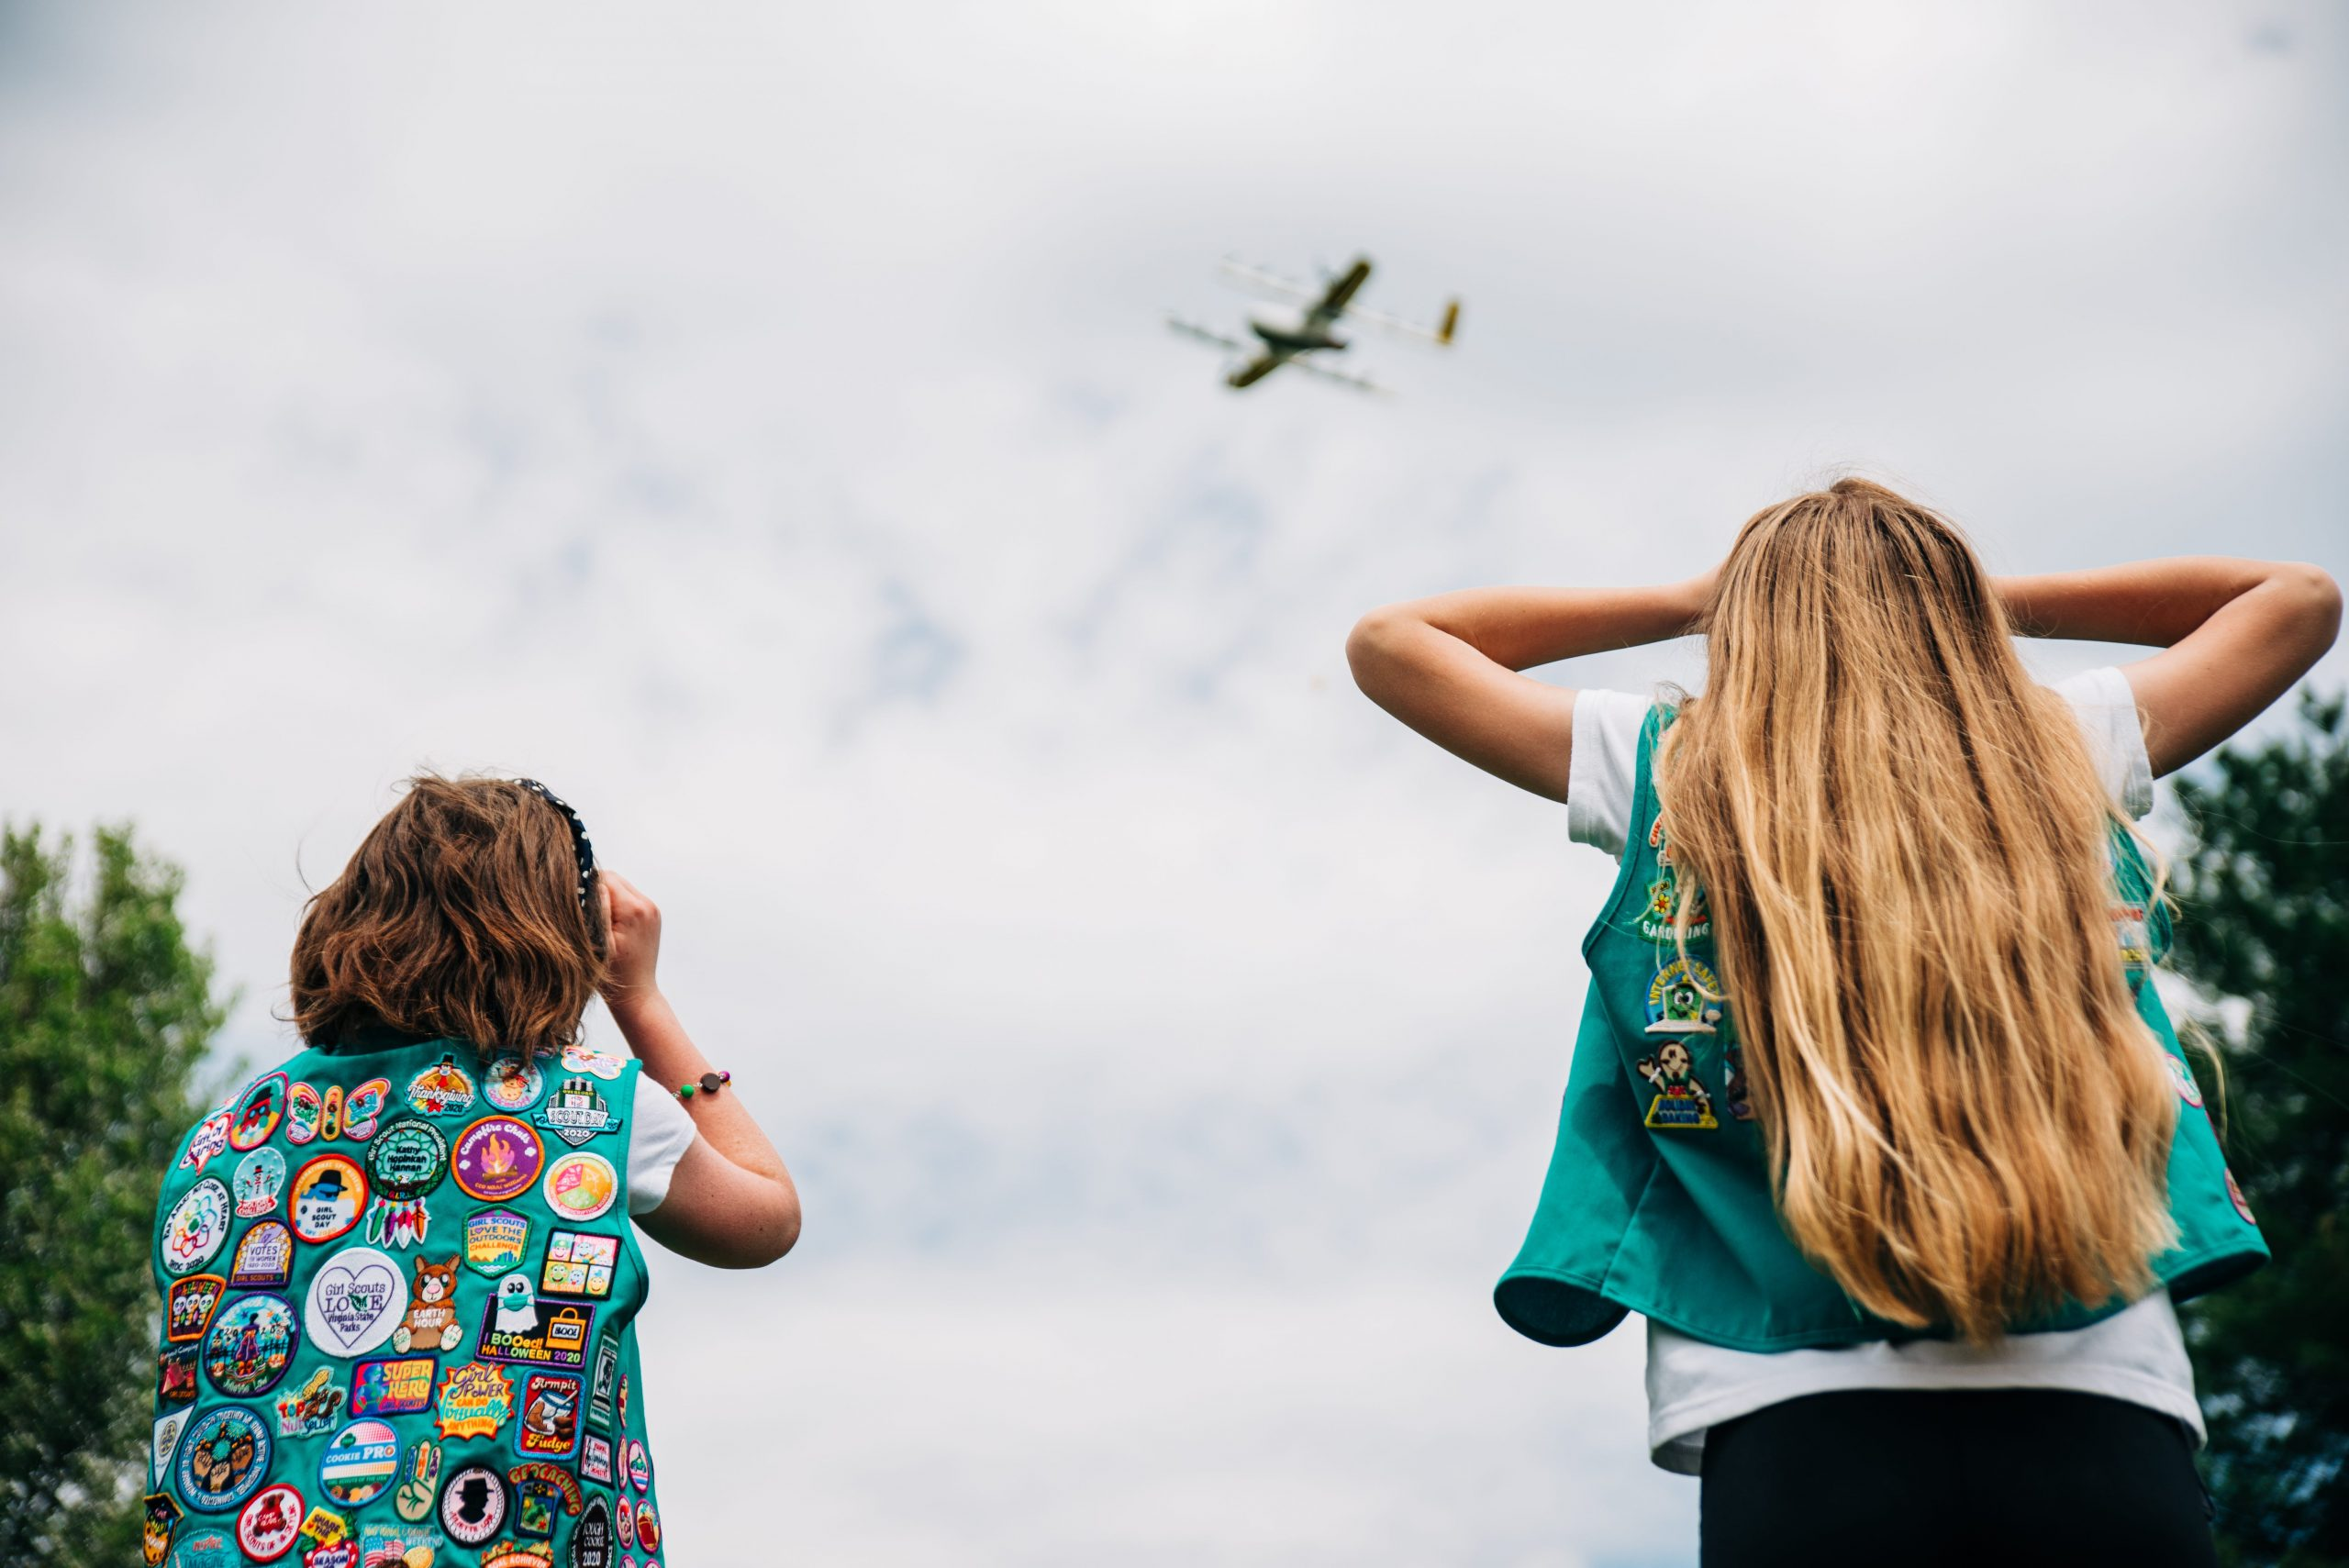 Girl Scout cookies delivered by drone? A Virginia troop teamed up with Google Wing amid COVID-19